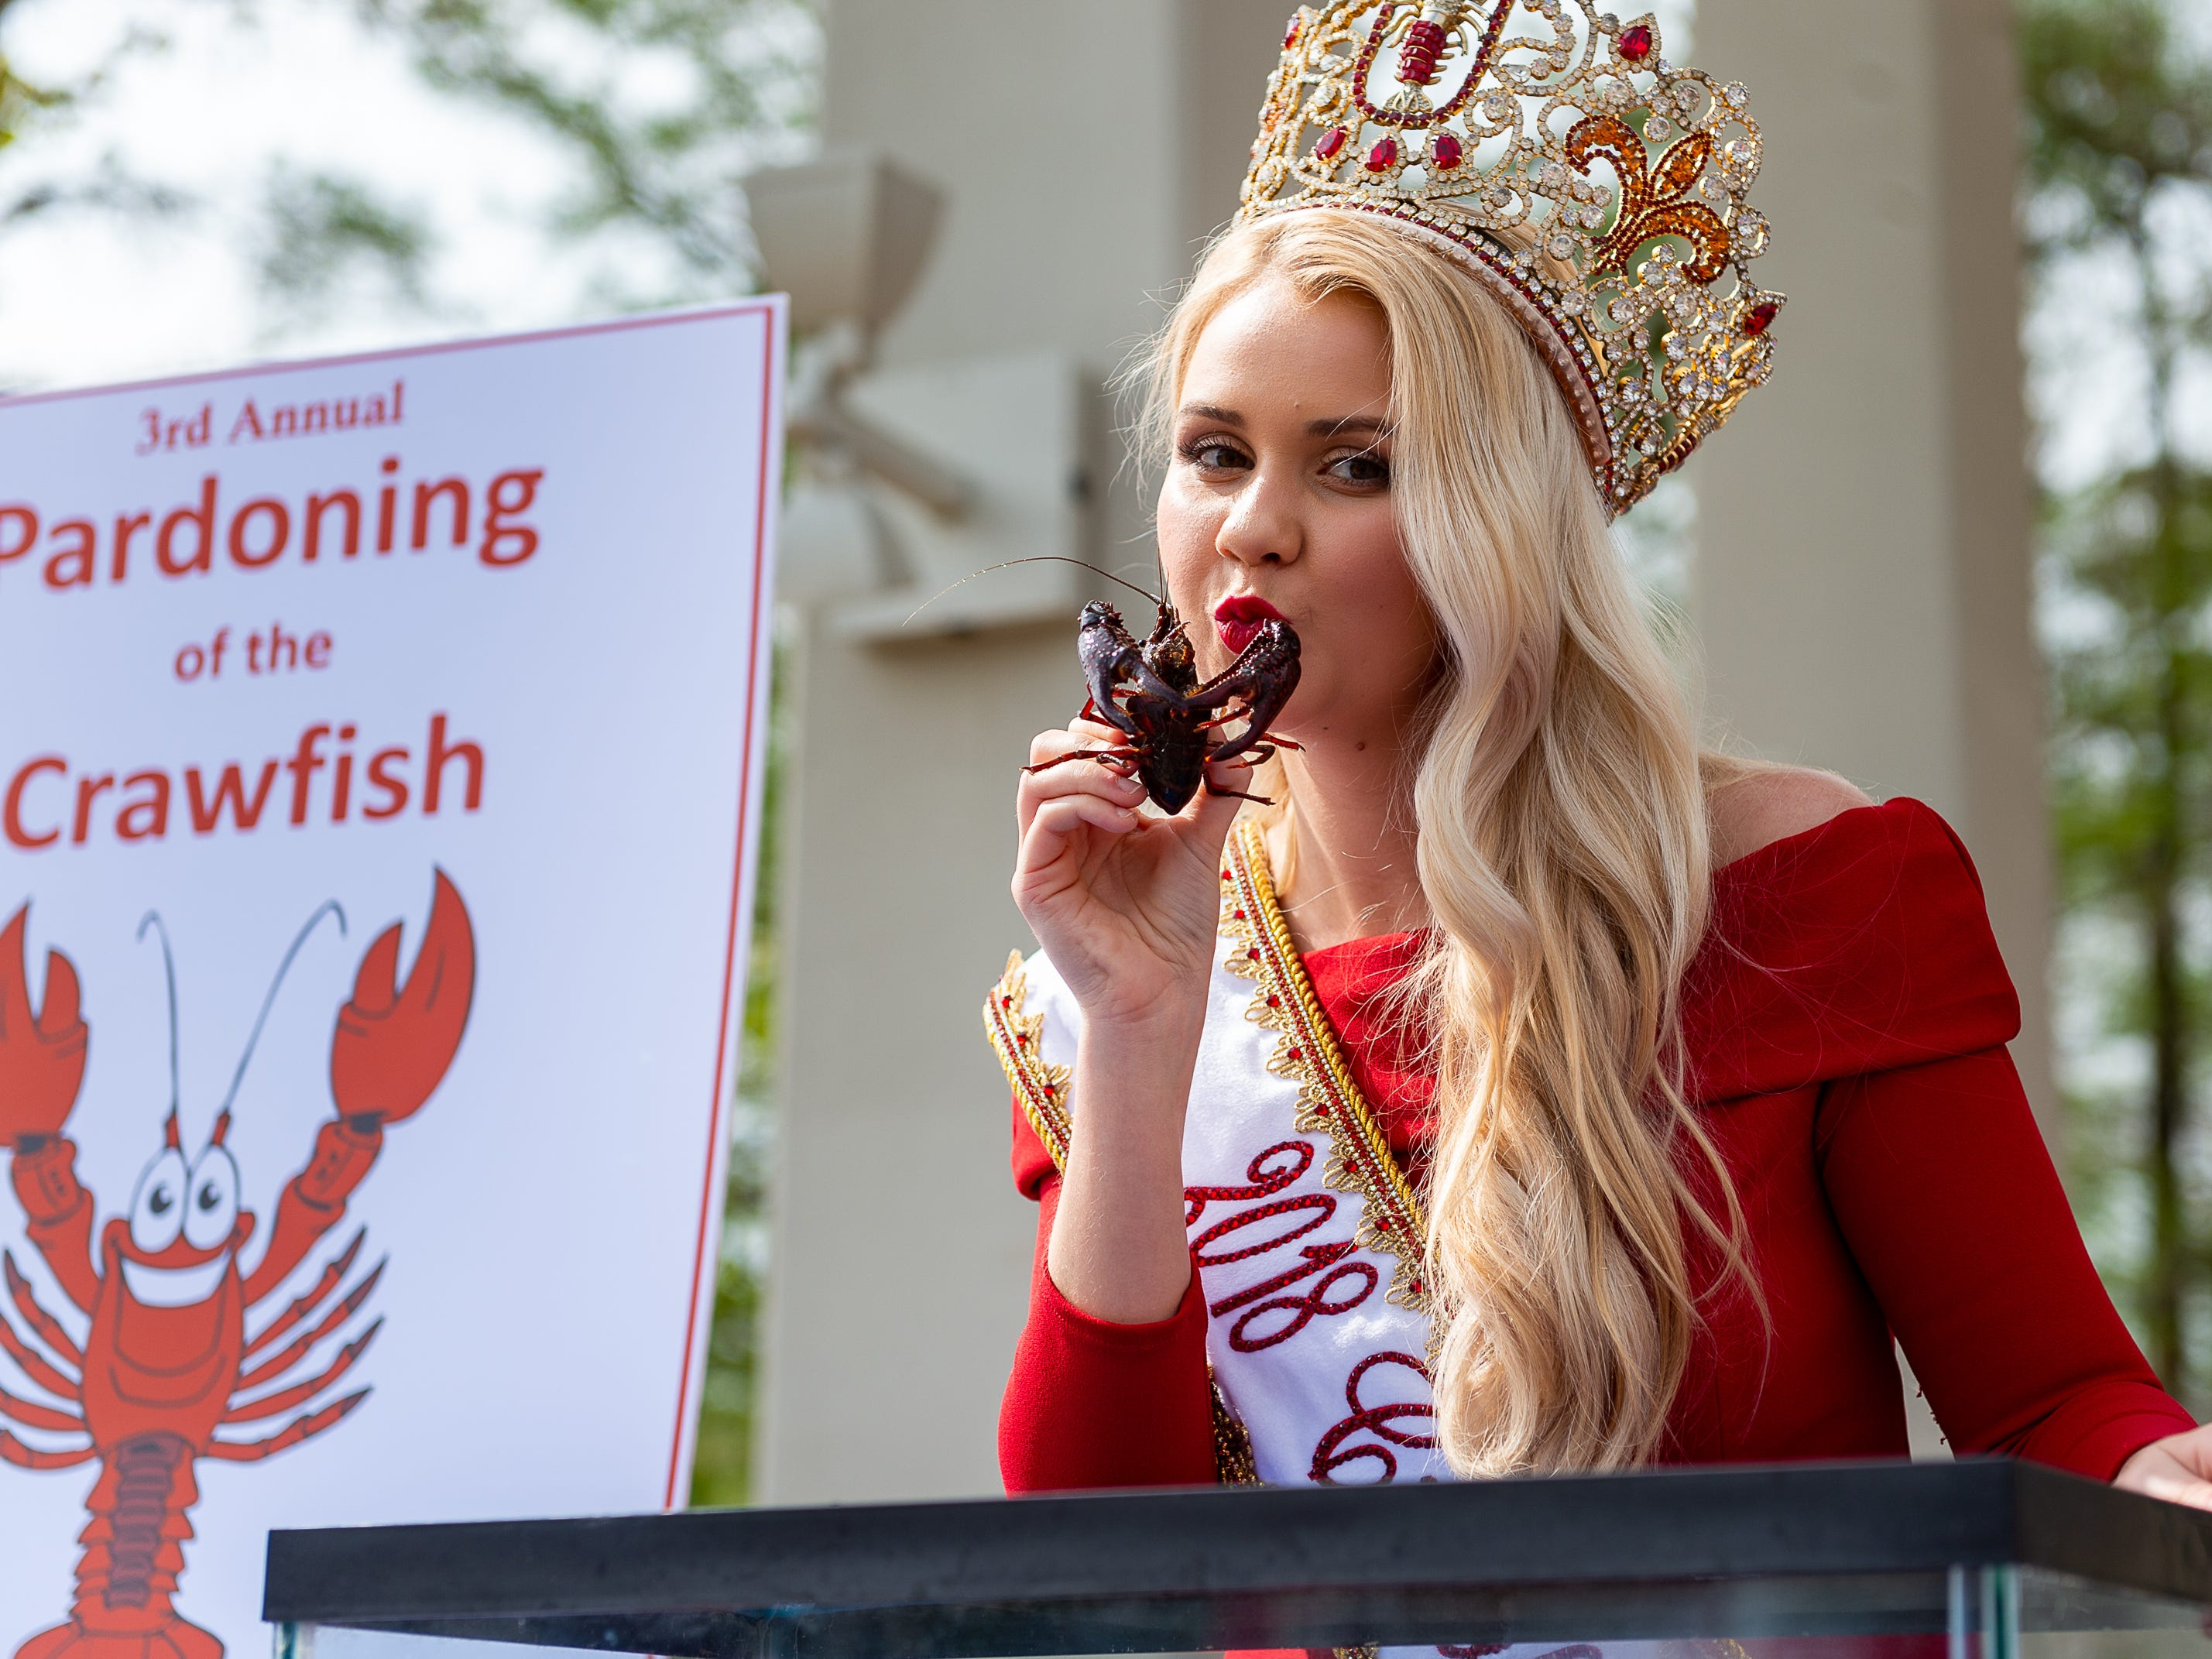 Louisiana Lieutenant Governor Billy Nungesser and the Louisiana Seafood Promotion and Marketing Board host the 3rd Annual Pardoning of the Crawfish at Cypress Lake Plaza on the campus of the University of Louisiana at Lafayette. Started in 2017 by Lt. Governor Nungesser, this unique event celebrates crawfish season in Louisiana and across the Gulf South. Tuesday, March 12, 2019. (Pictured- Gabrielle Hebert, La Crawfish Festival Queen)